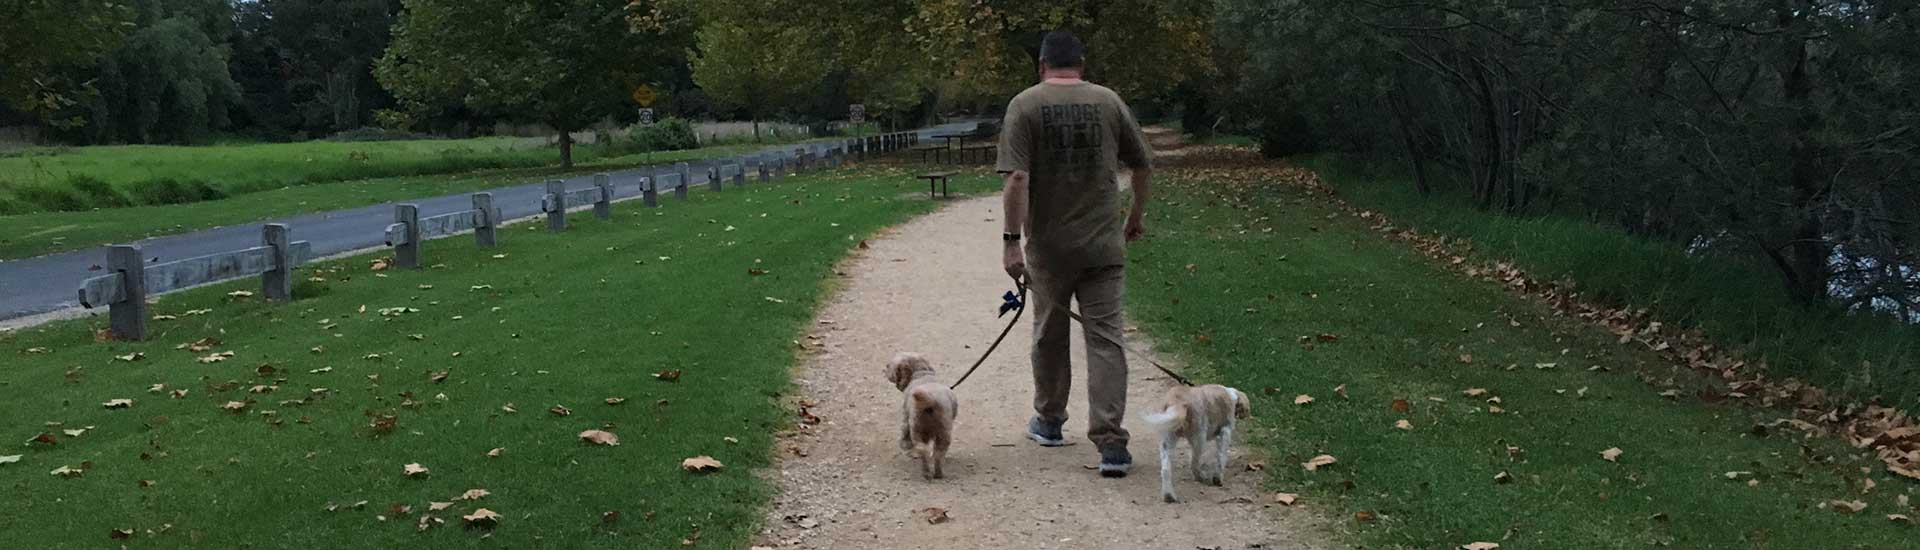 David Mitchell River walk with the dogs